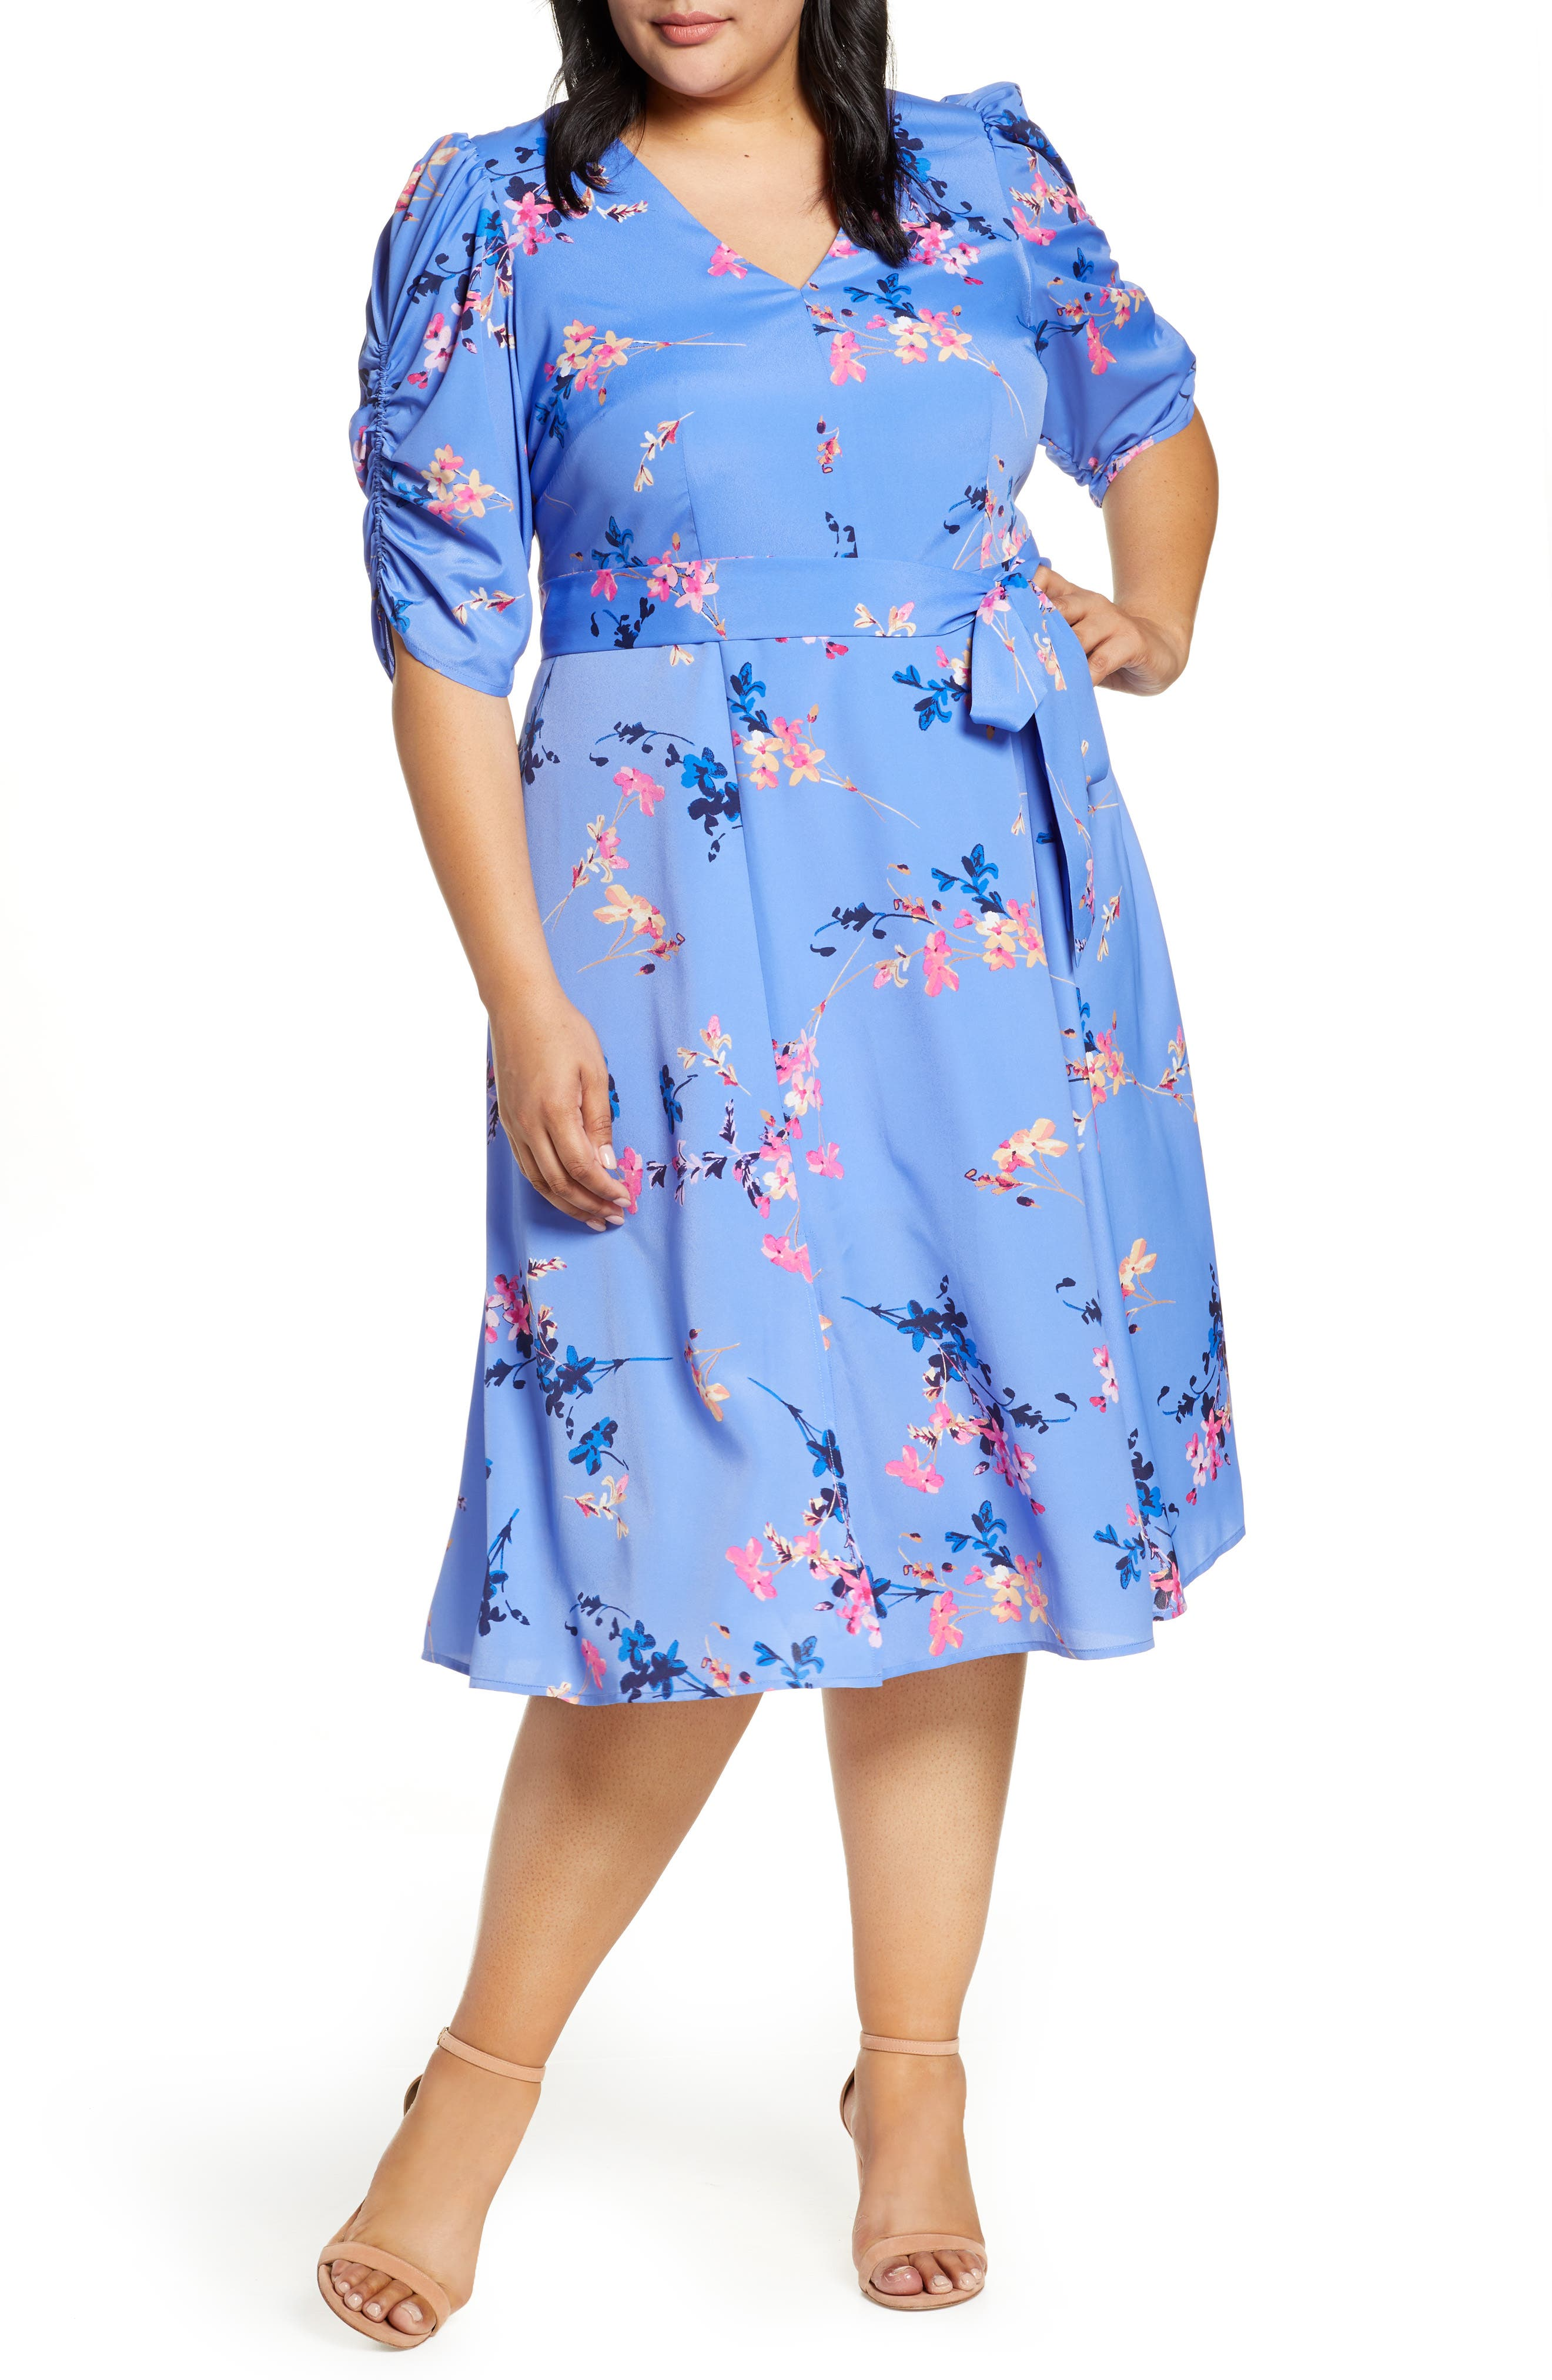 1940s Plus Size Fashion: Style Advice from 1940s to Today Plus Size Womens Eliza J Print Fit  Flare Dress Size 14W - Blue $168.00 AT vintagedancer.com